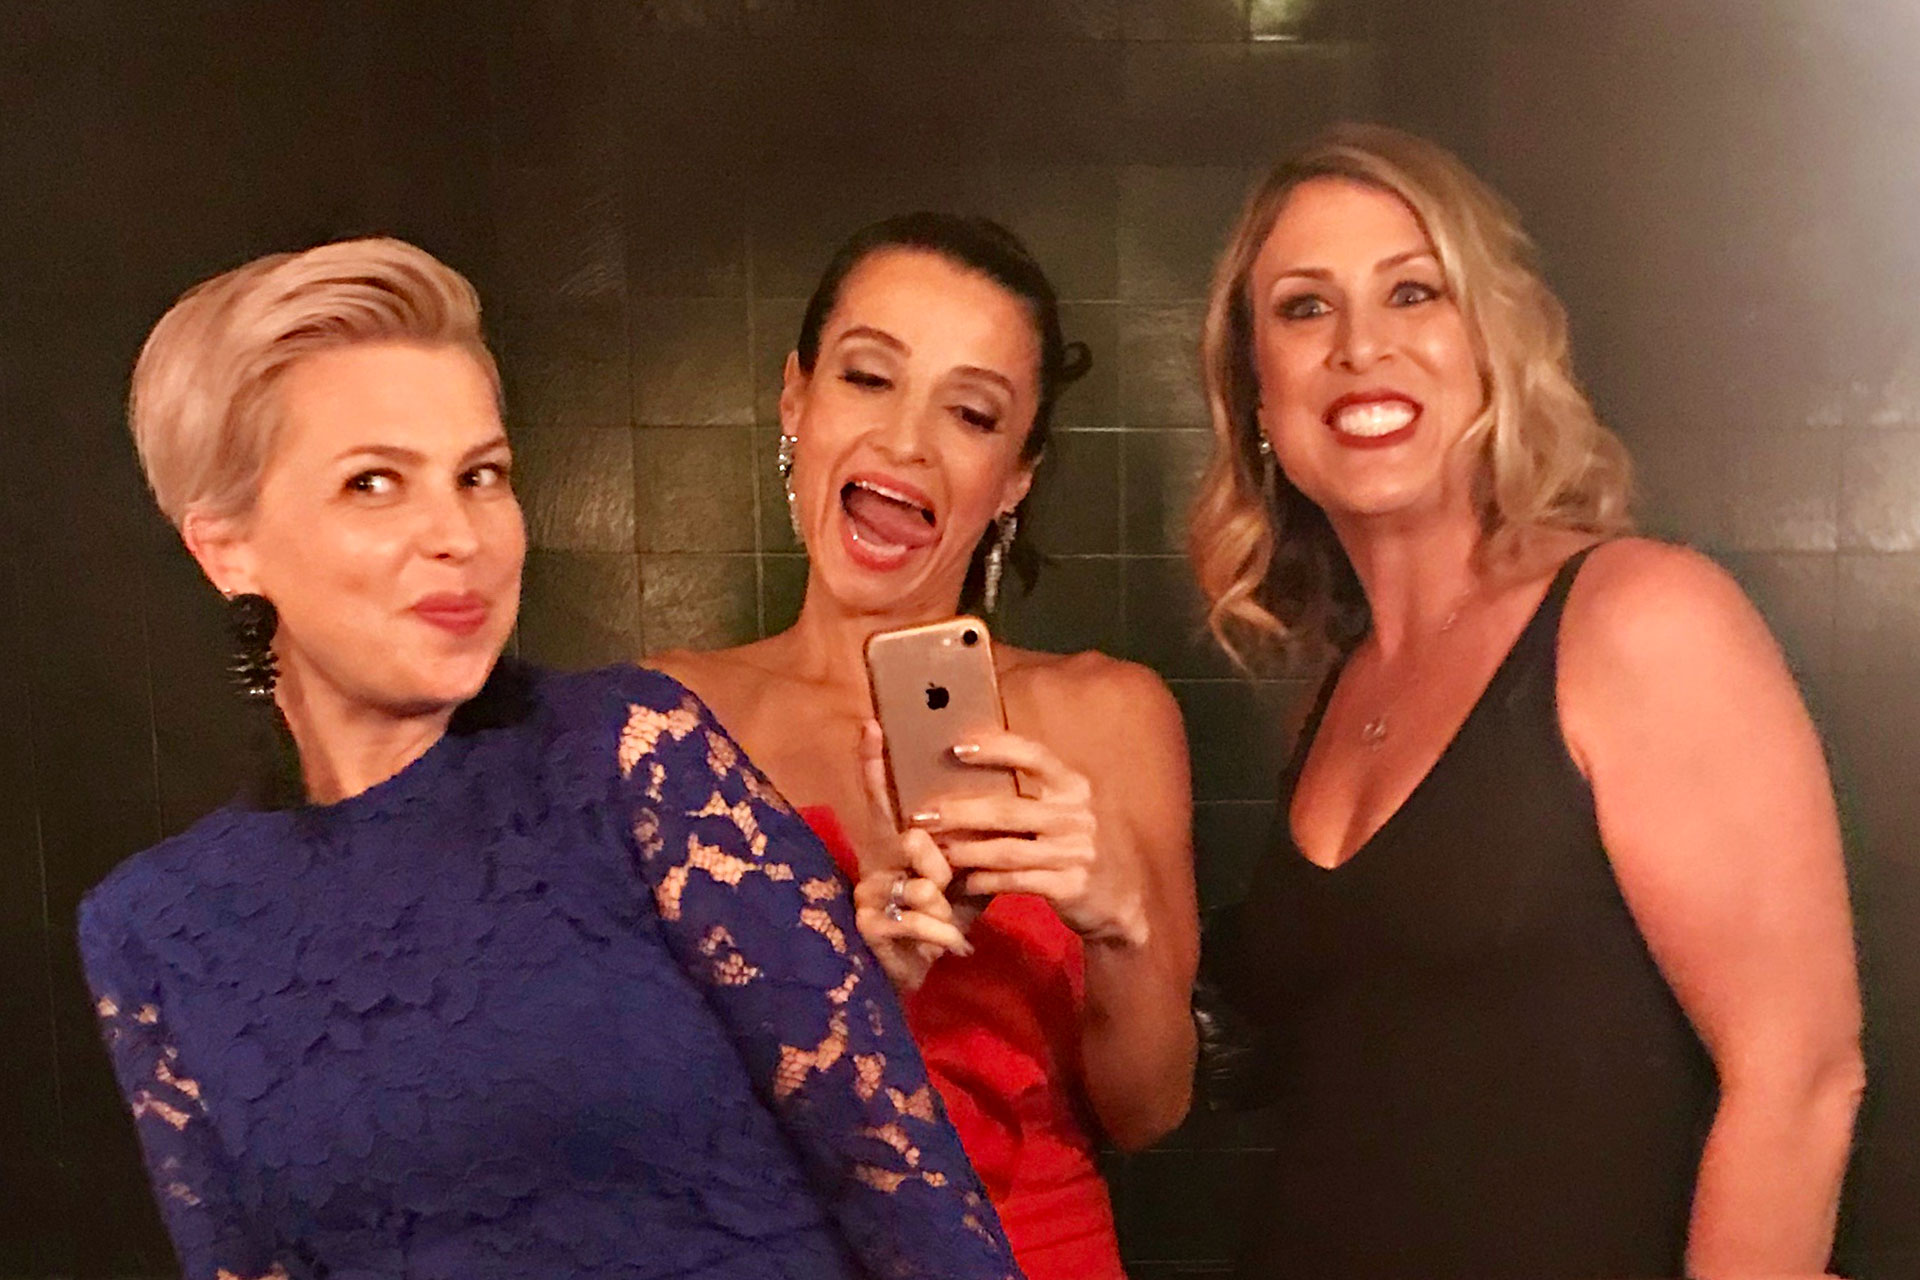 bad moms red carpet premiere, the price is right, bad moms christmas, #badmomsxmas, red carpet premiere